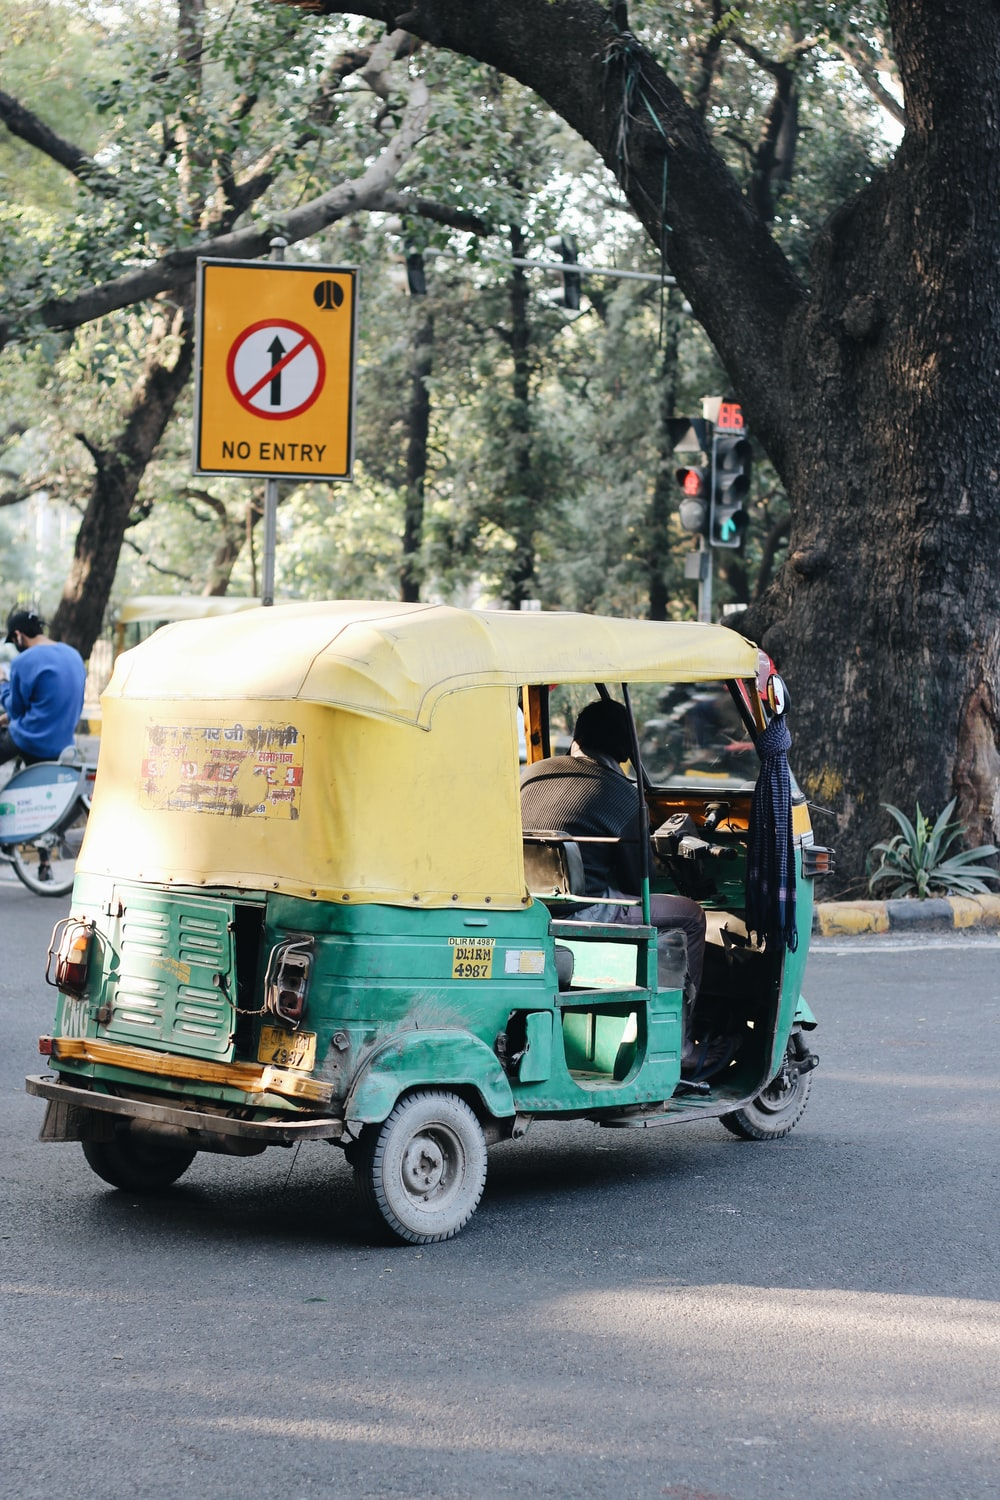 green and white auto rickshaw on road during daytime